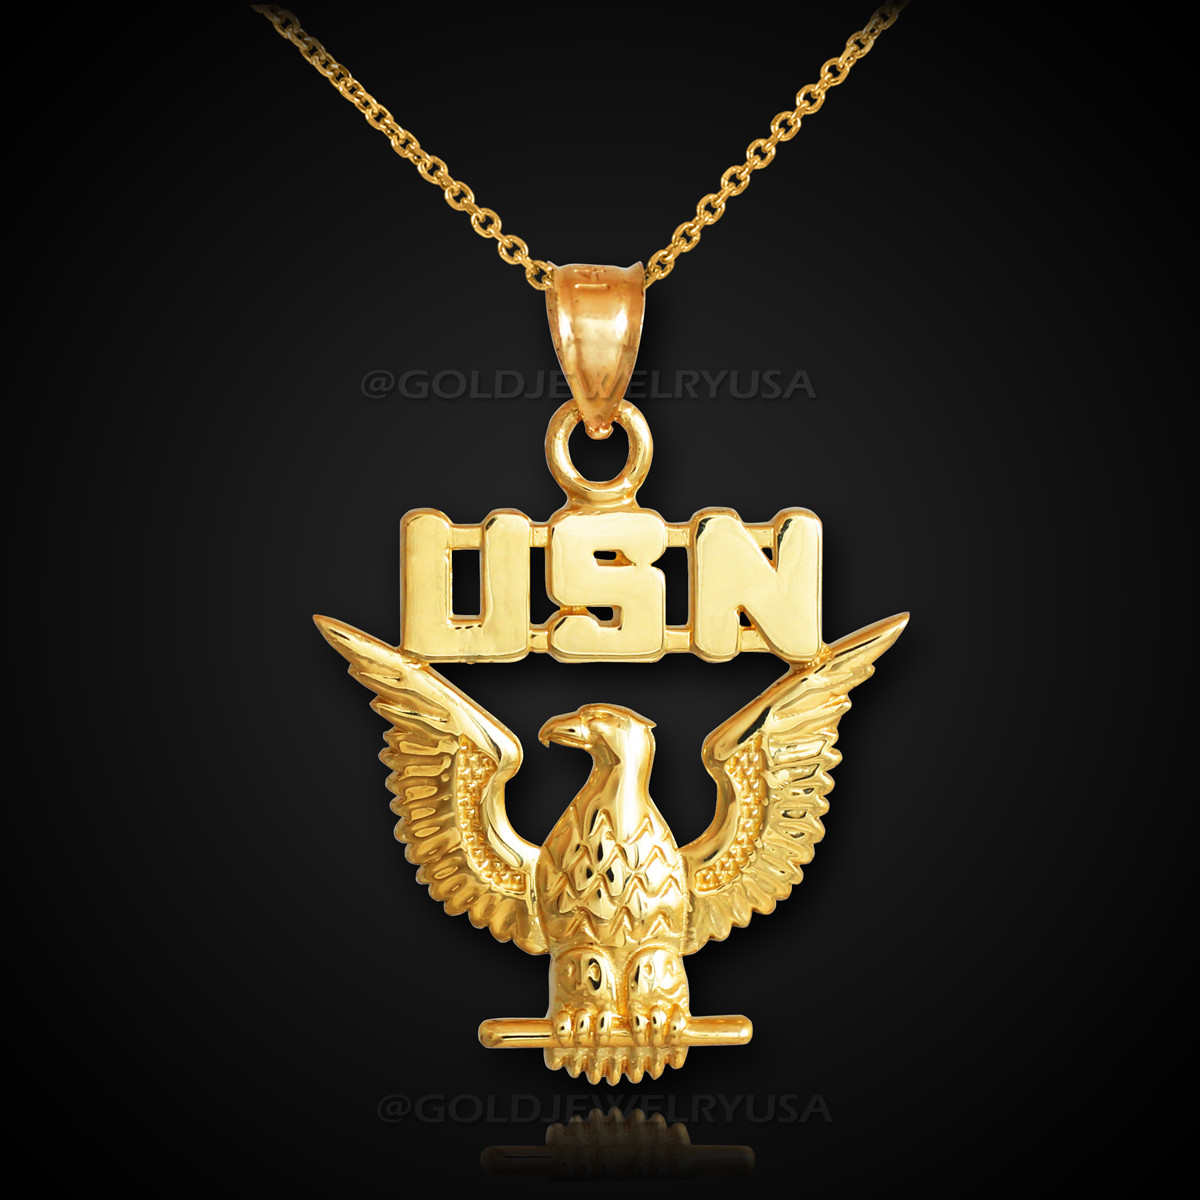 Gold us navy usn pendant necklace aloadofball Choice Image